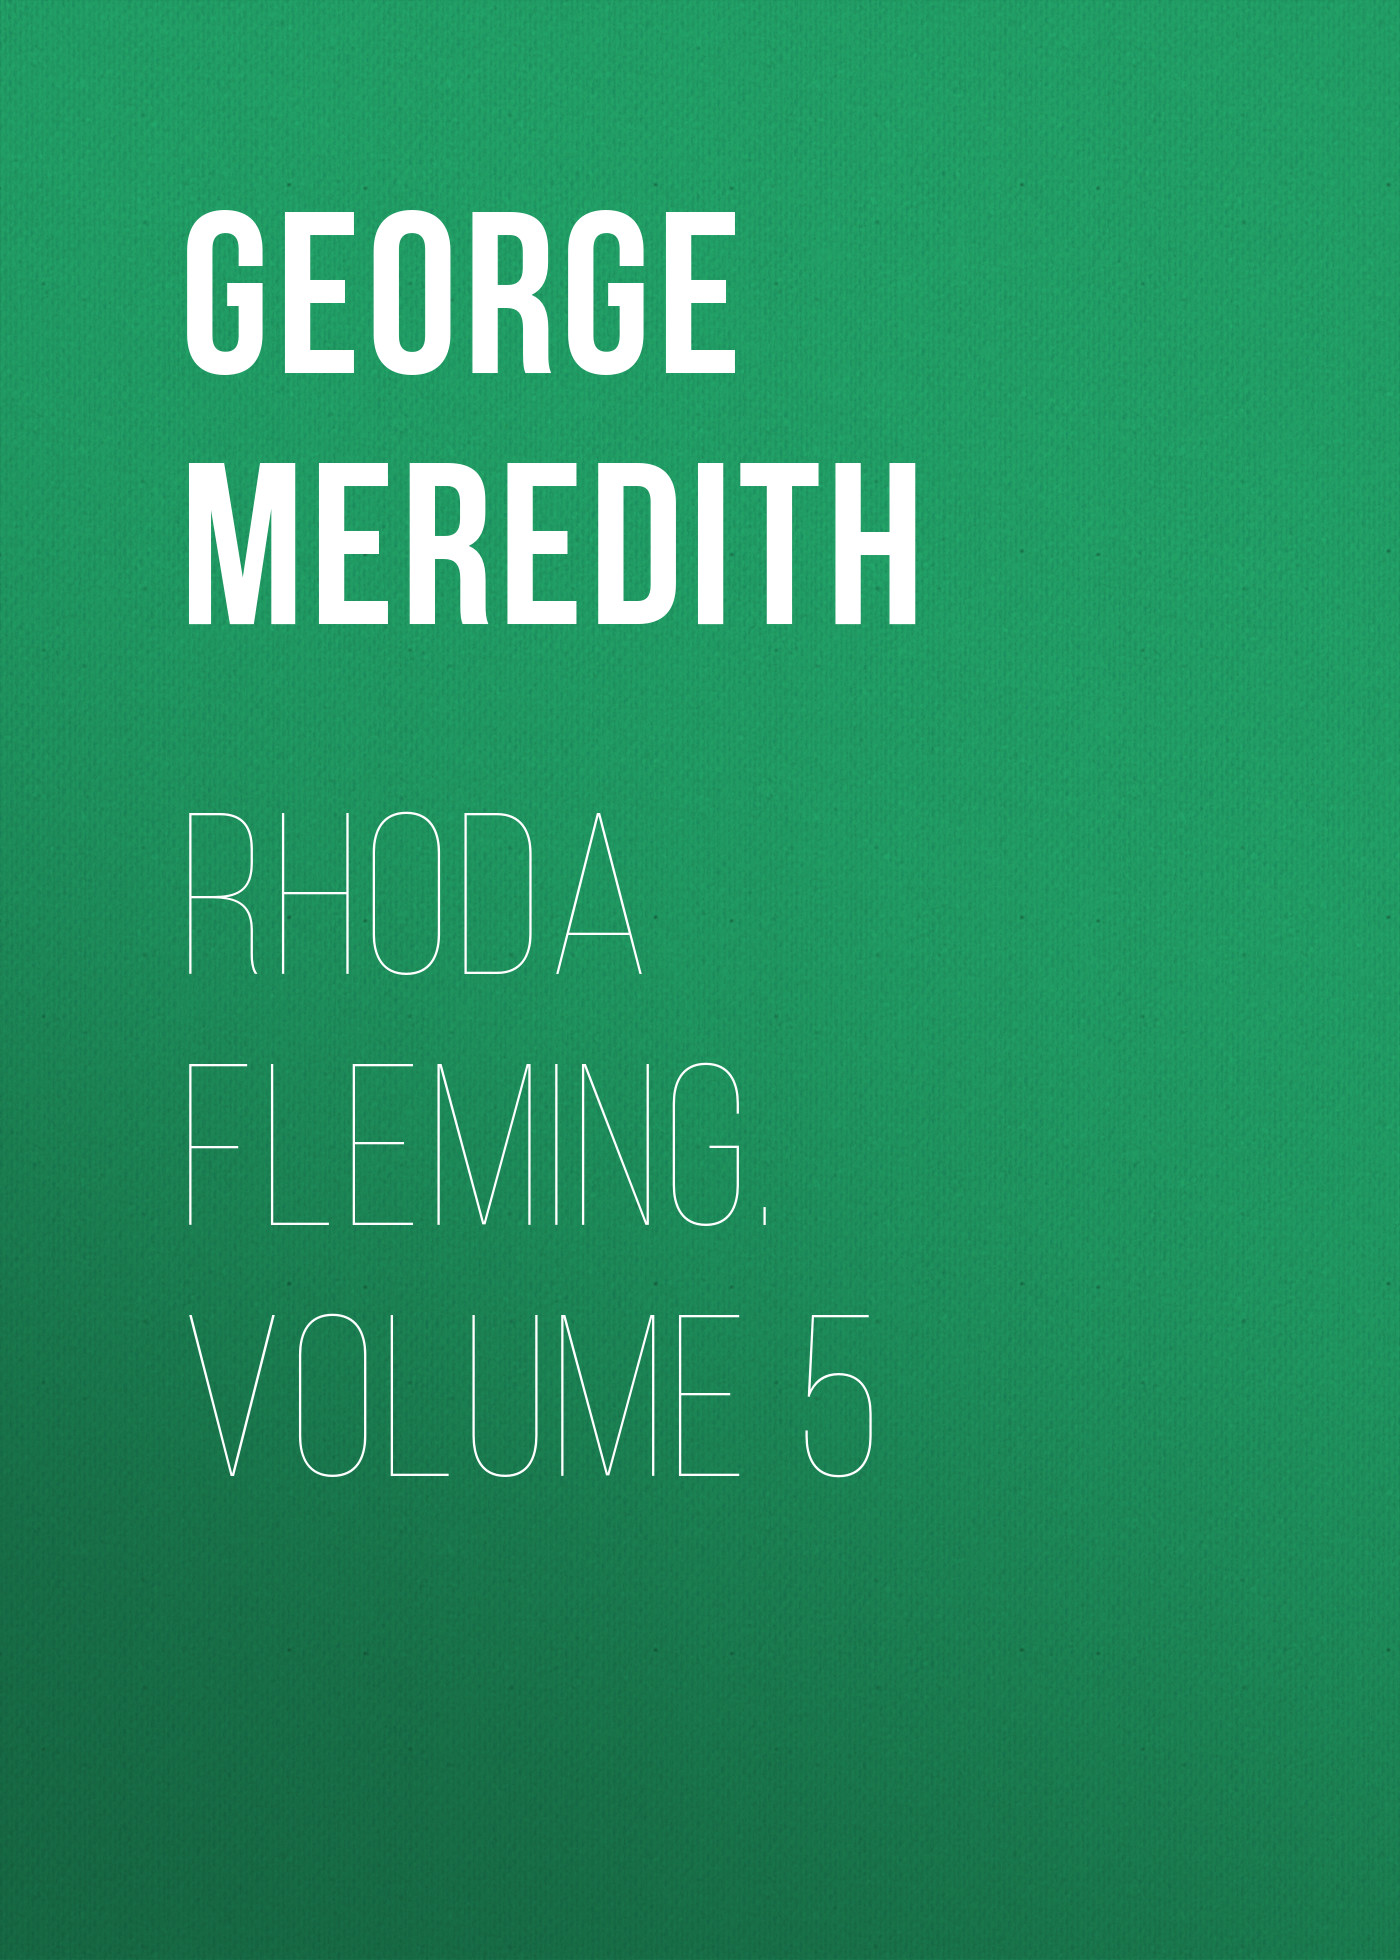 Rhoda Fleming. Volume 5